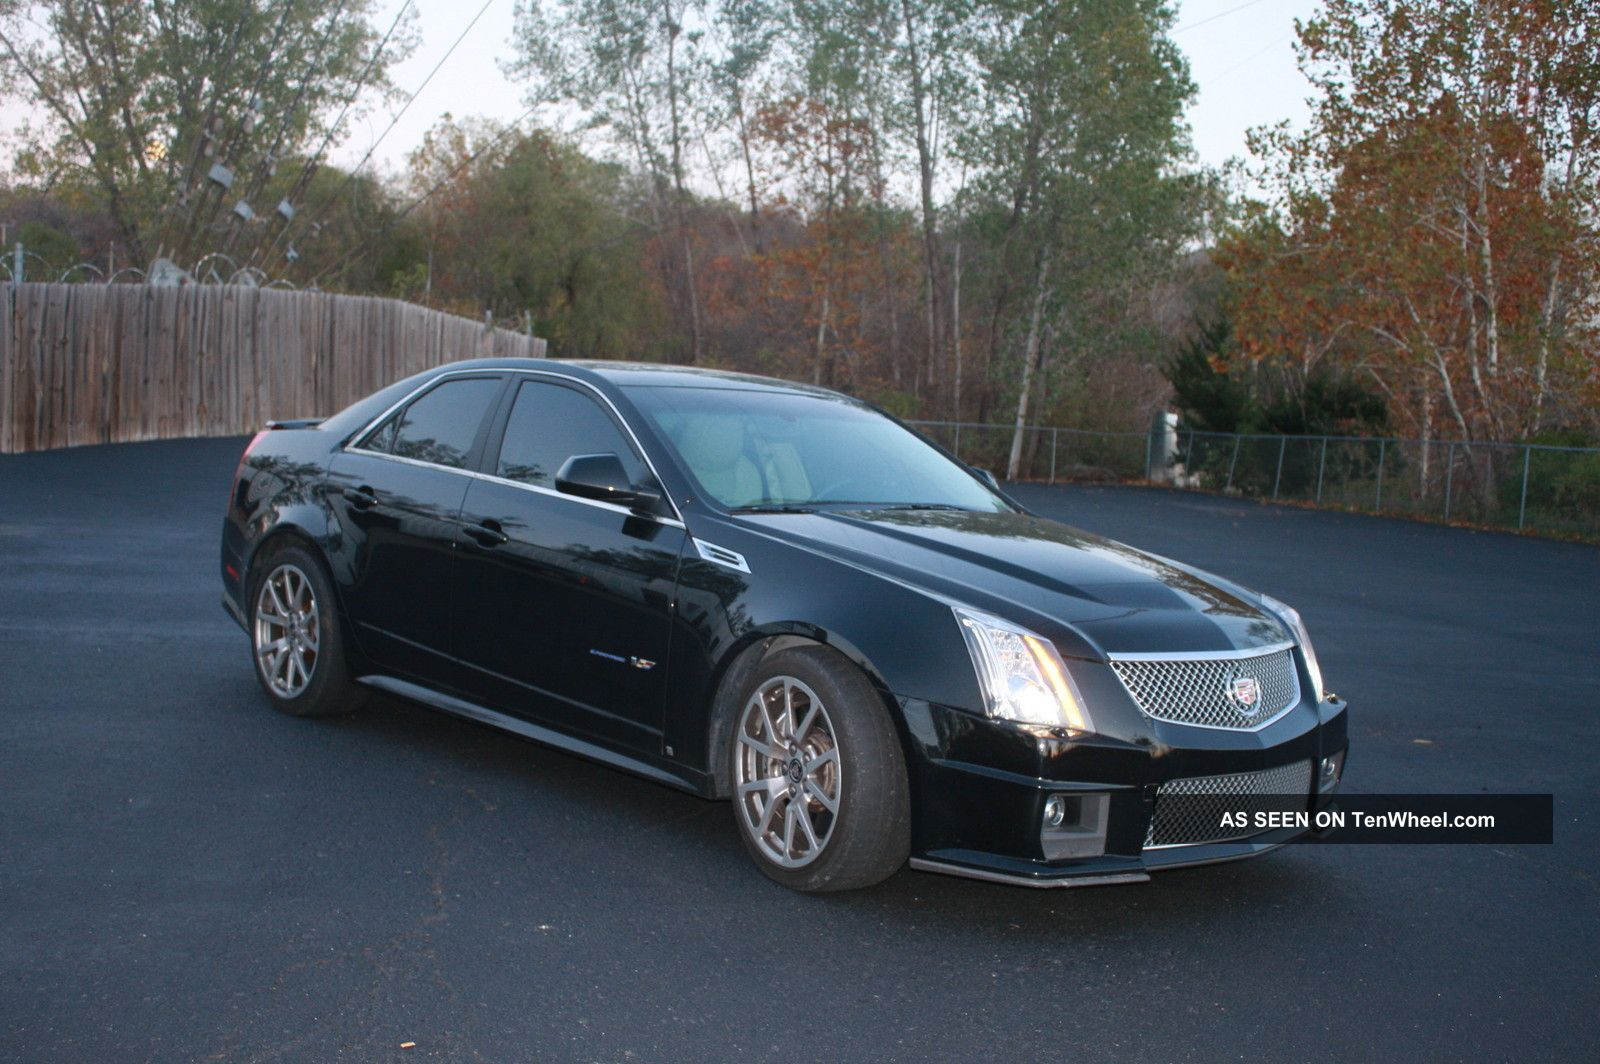 2009 cadillac cts v sedan 4 door 6 2l corvette eater. Black Bedroom Furniture Sets. Home Design Ideas